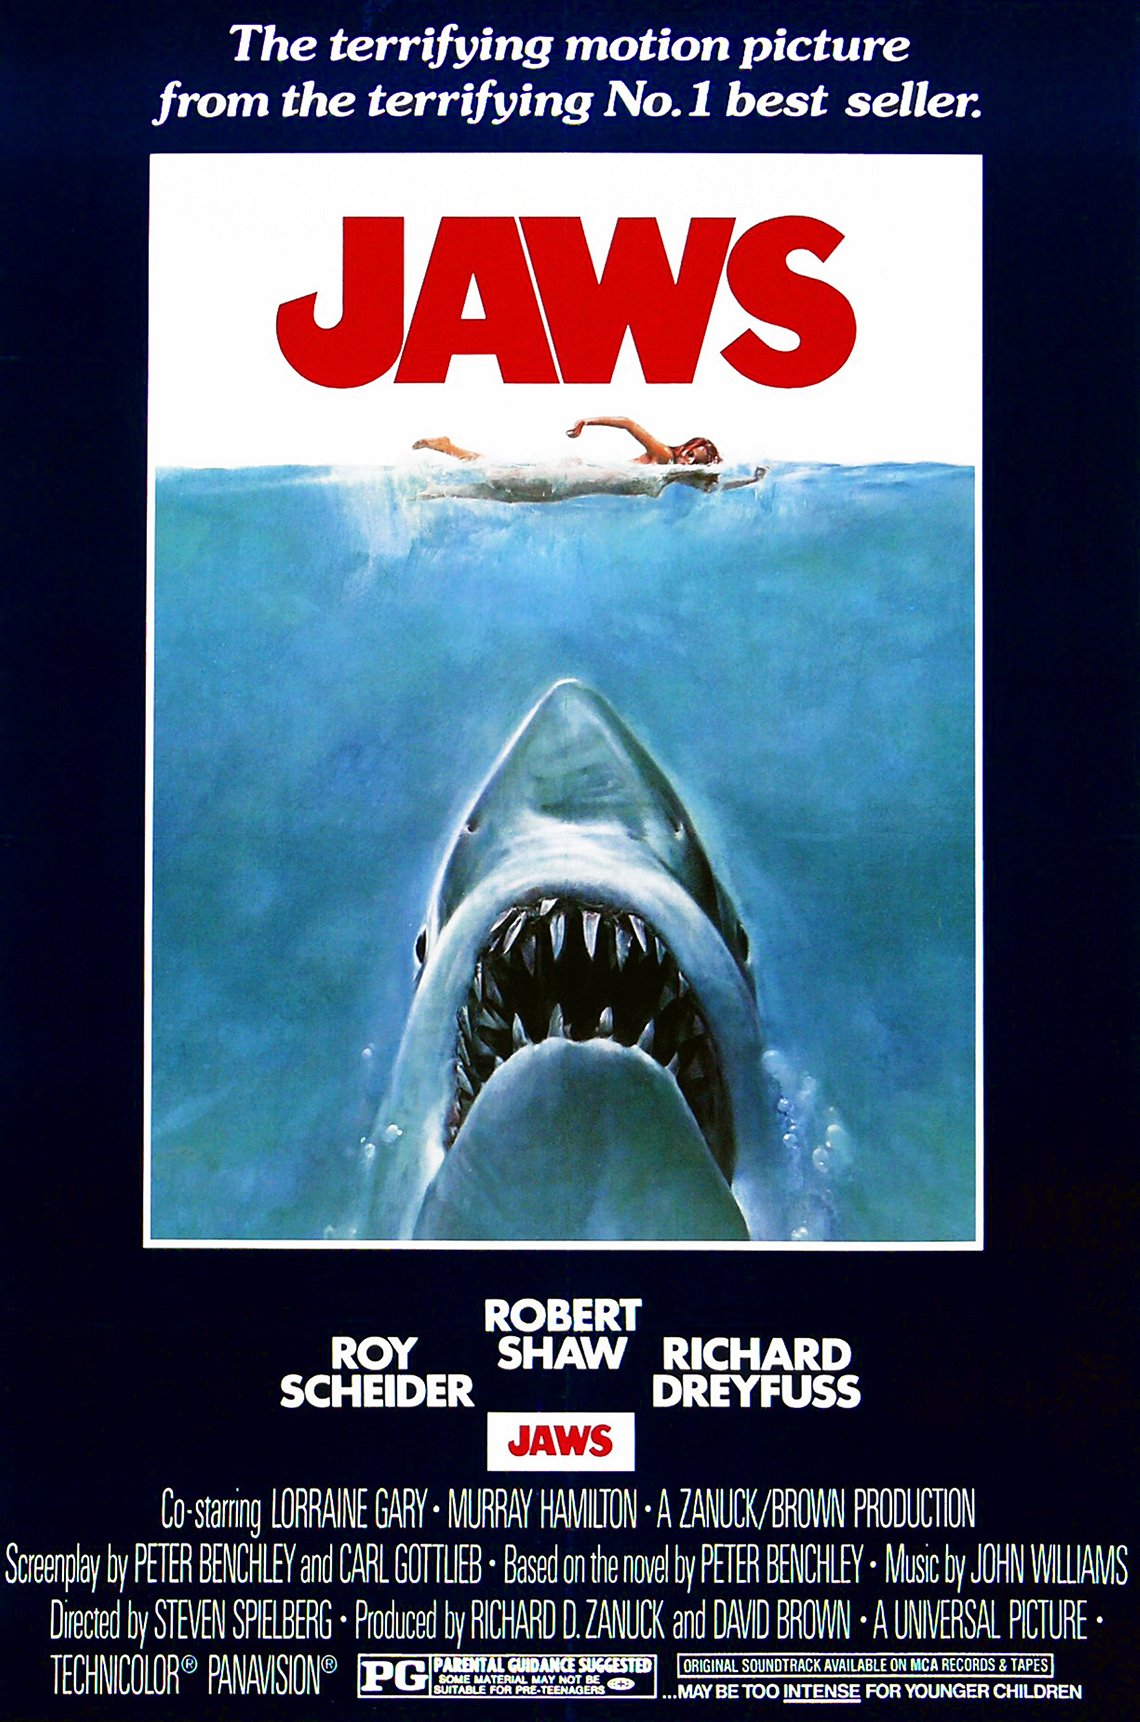 The movie poster for the 1975 film Jaws